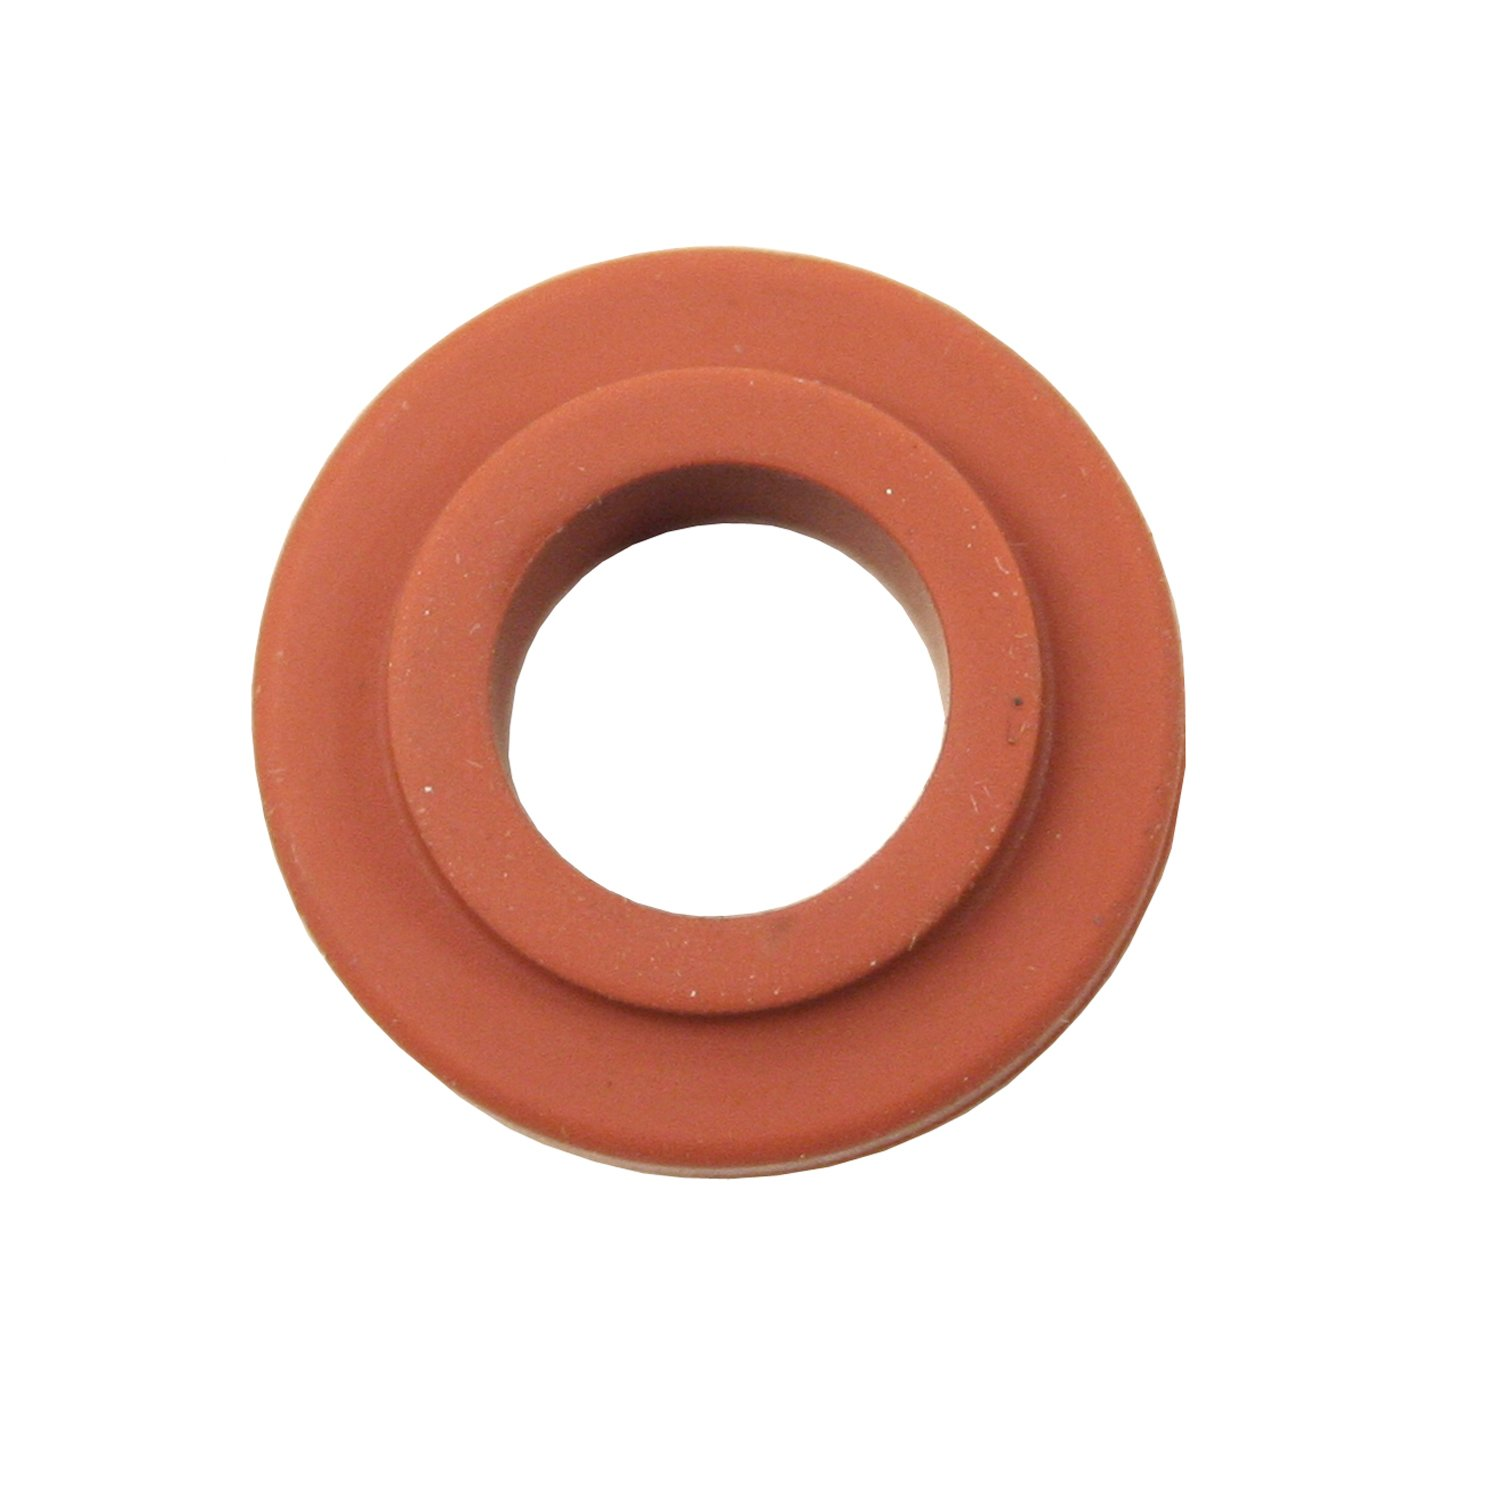 Beck Arnley 039-6165 Oil Cooler Seal